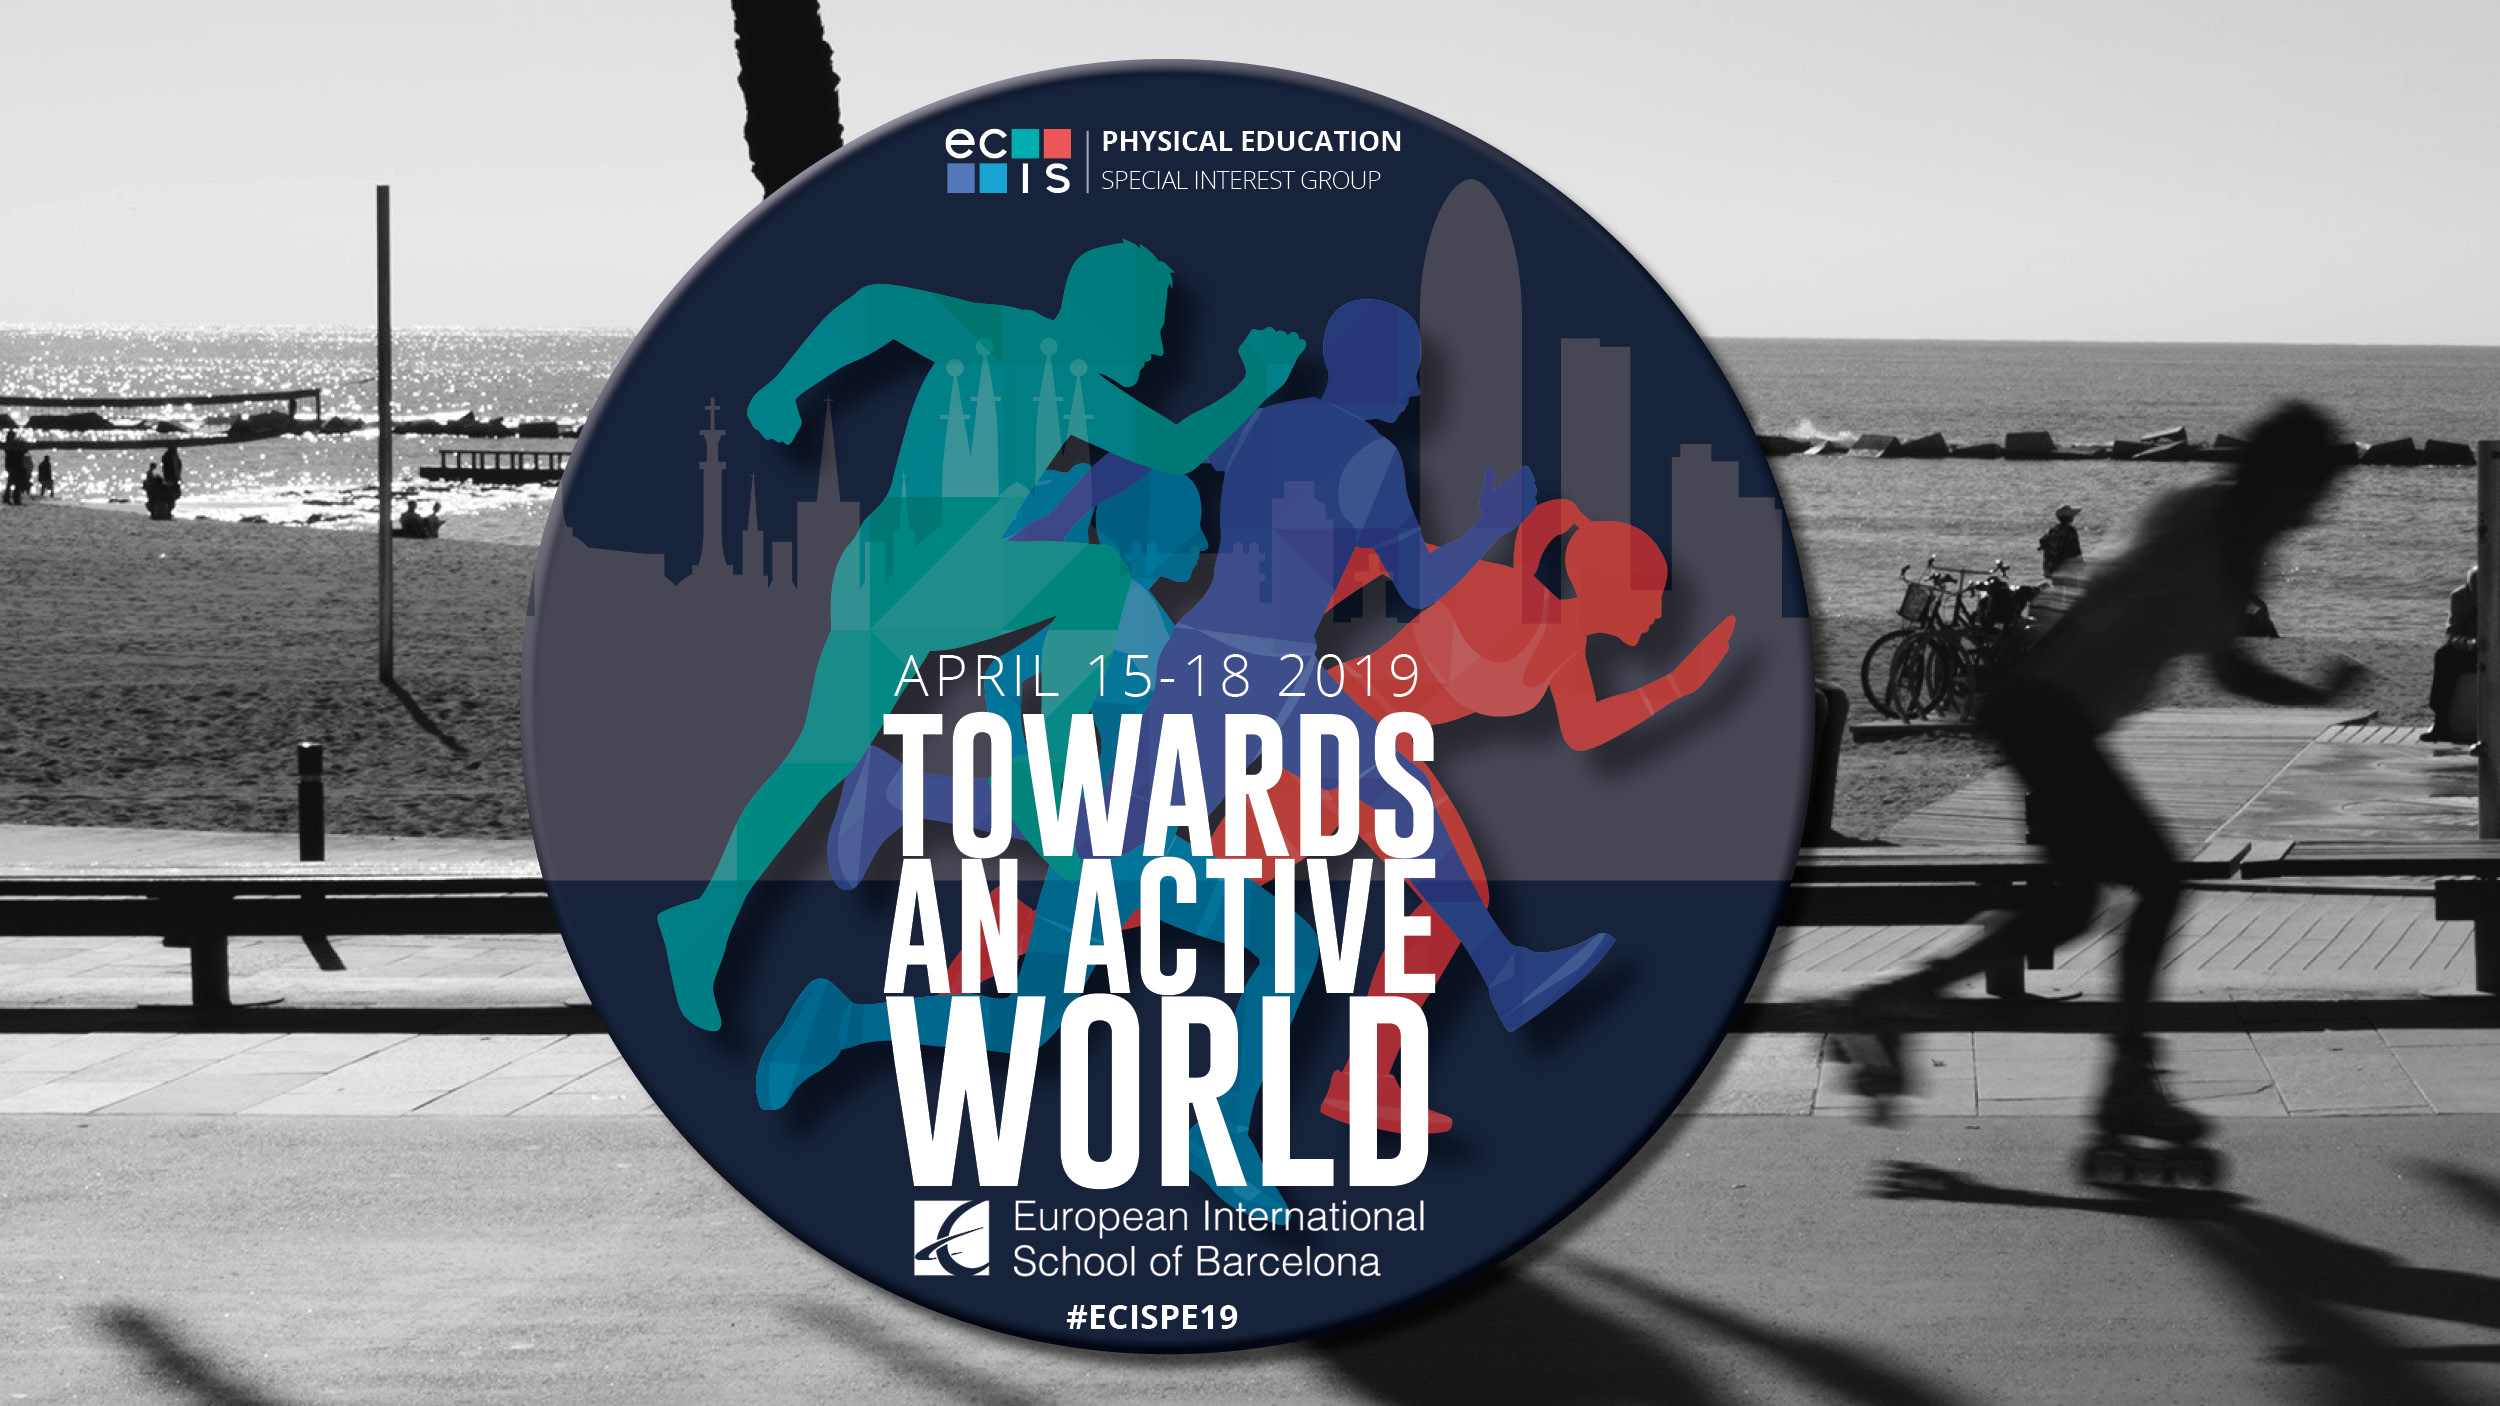 2019 Physical Education Conference | Barcelona | 15-18 April 2019 -  Educational Collaborative for International Schools (ECIS)